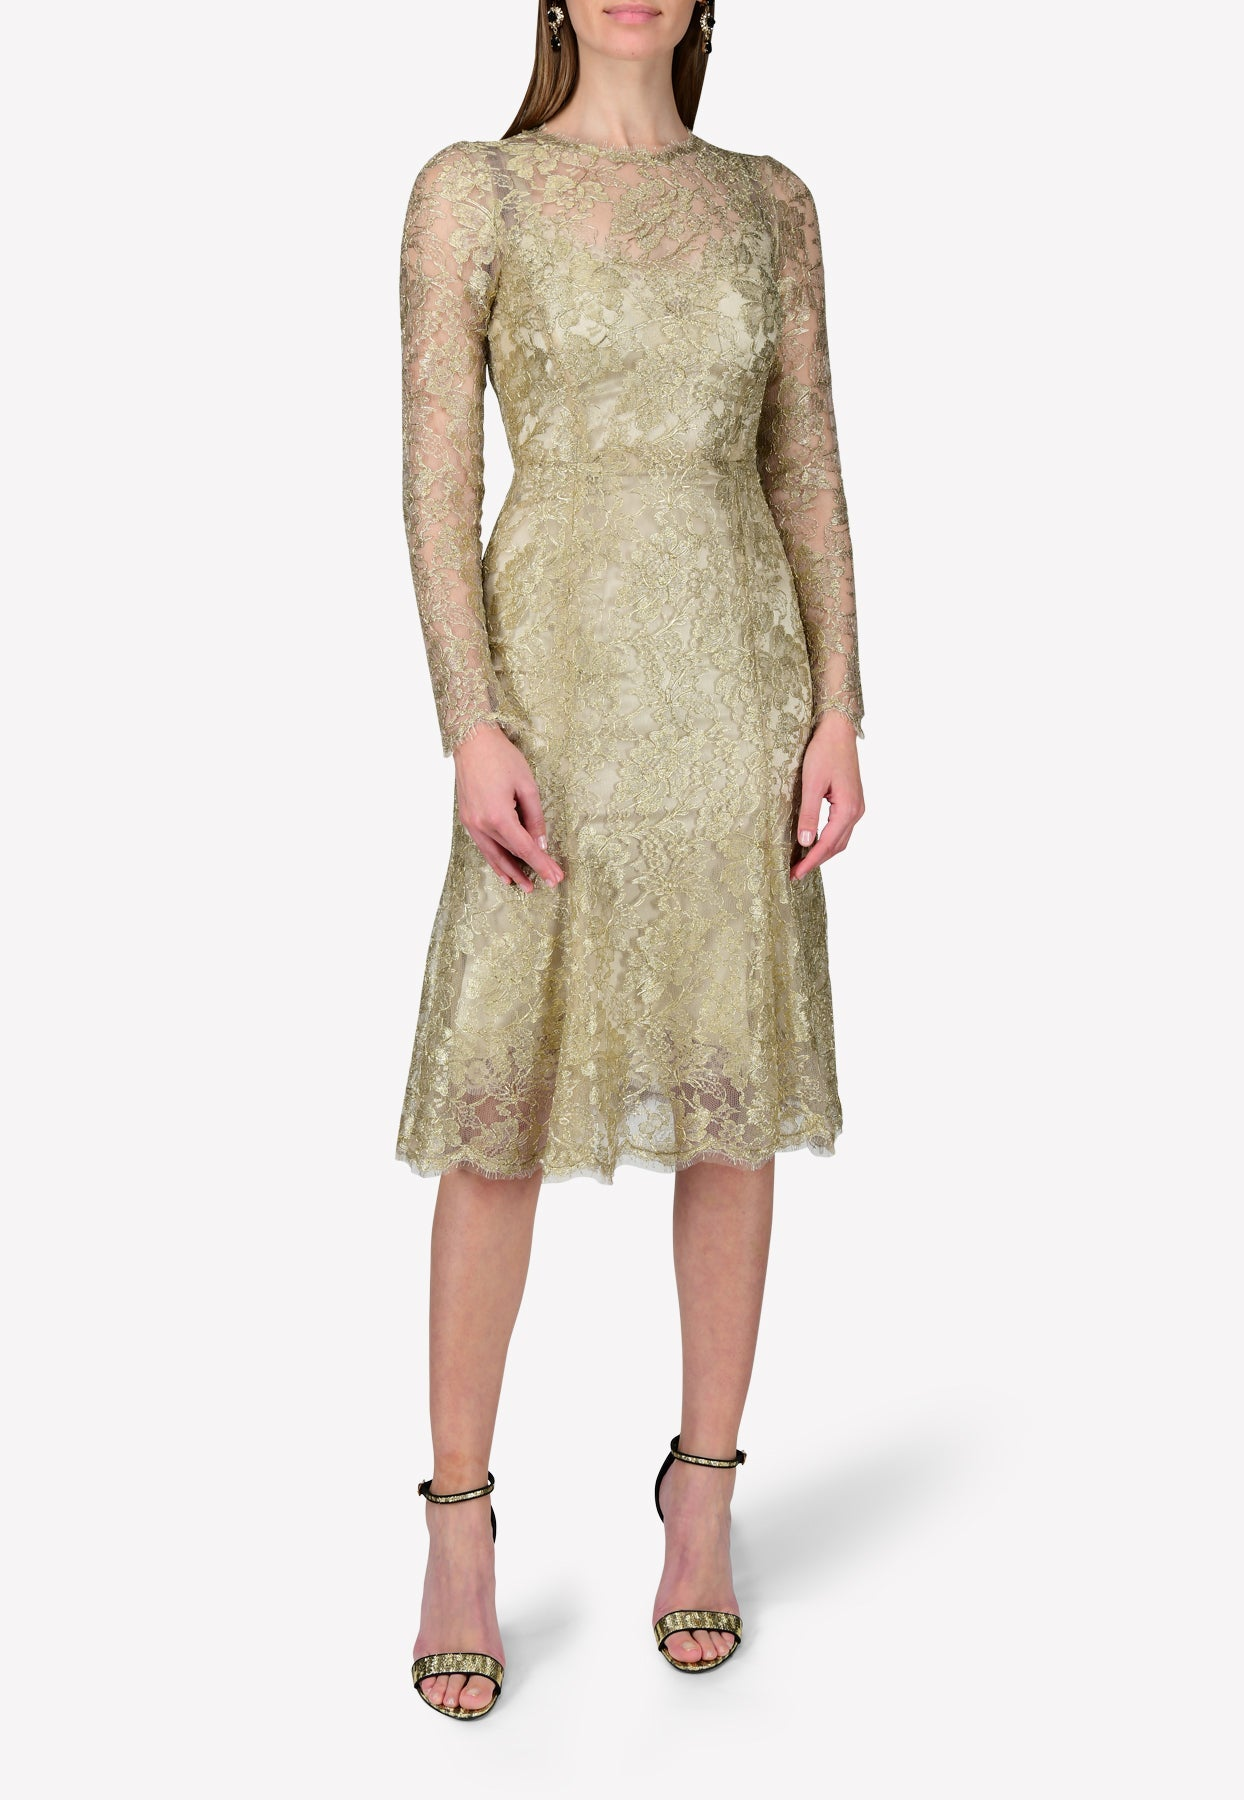 Dolce & Gabbana Chantilly Lace Midi Dress In Long Sleeves In Green